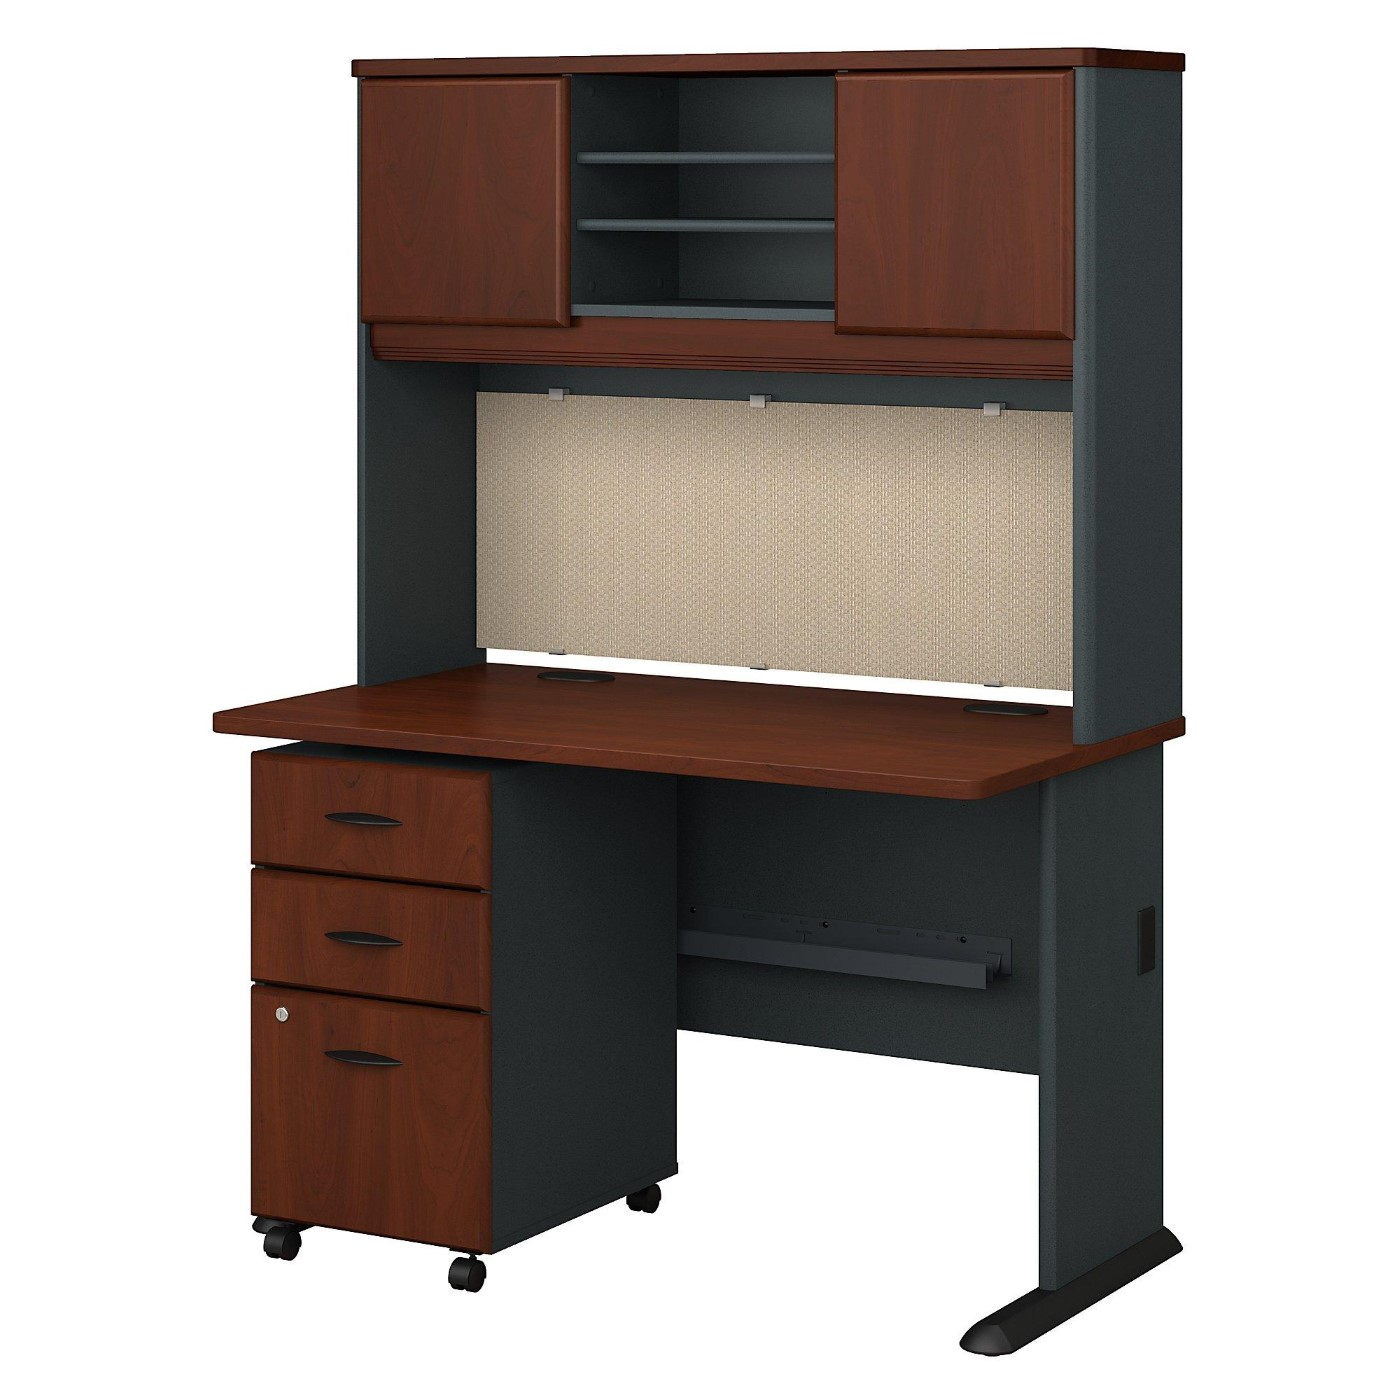 BUSH BUSINESS FURNITURE SERIES A 48W DESK WITH HUTCH AND MOBILE FILE CABINET #EH-SRA049HCSU. TAA COMPLIANT. FREE SHIPPING</font></b></font></b>&#x1F384<font color=red><b>ERGONOMICHOME HOLIDAY SALE - ENDS DEC. 17, 2019</b></font>&#x1F384